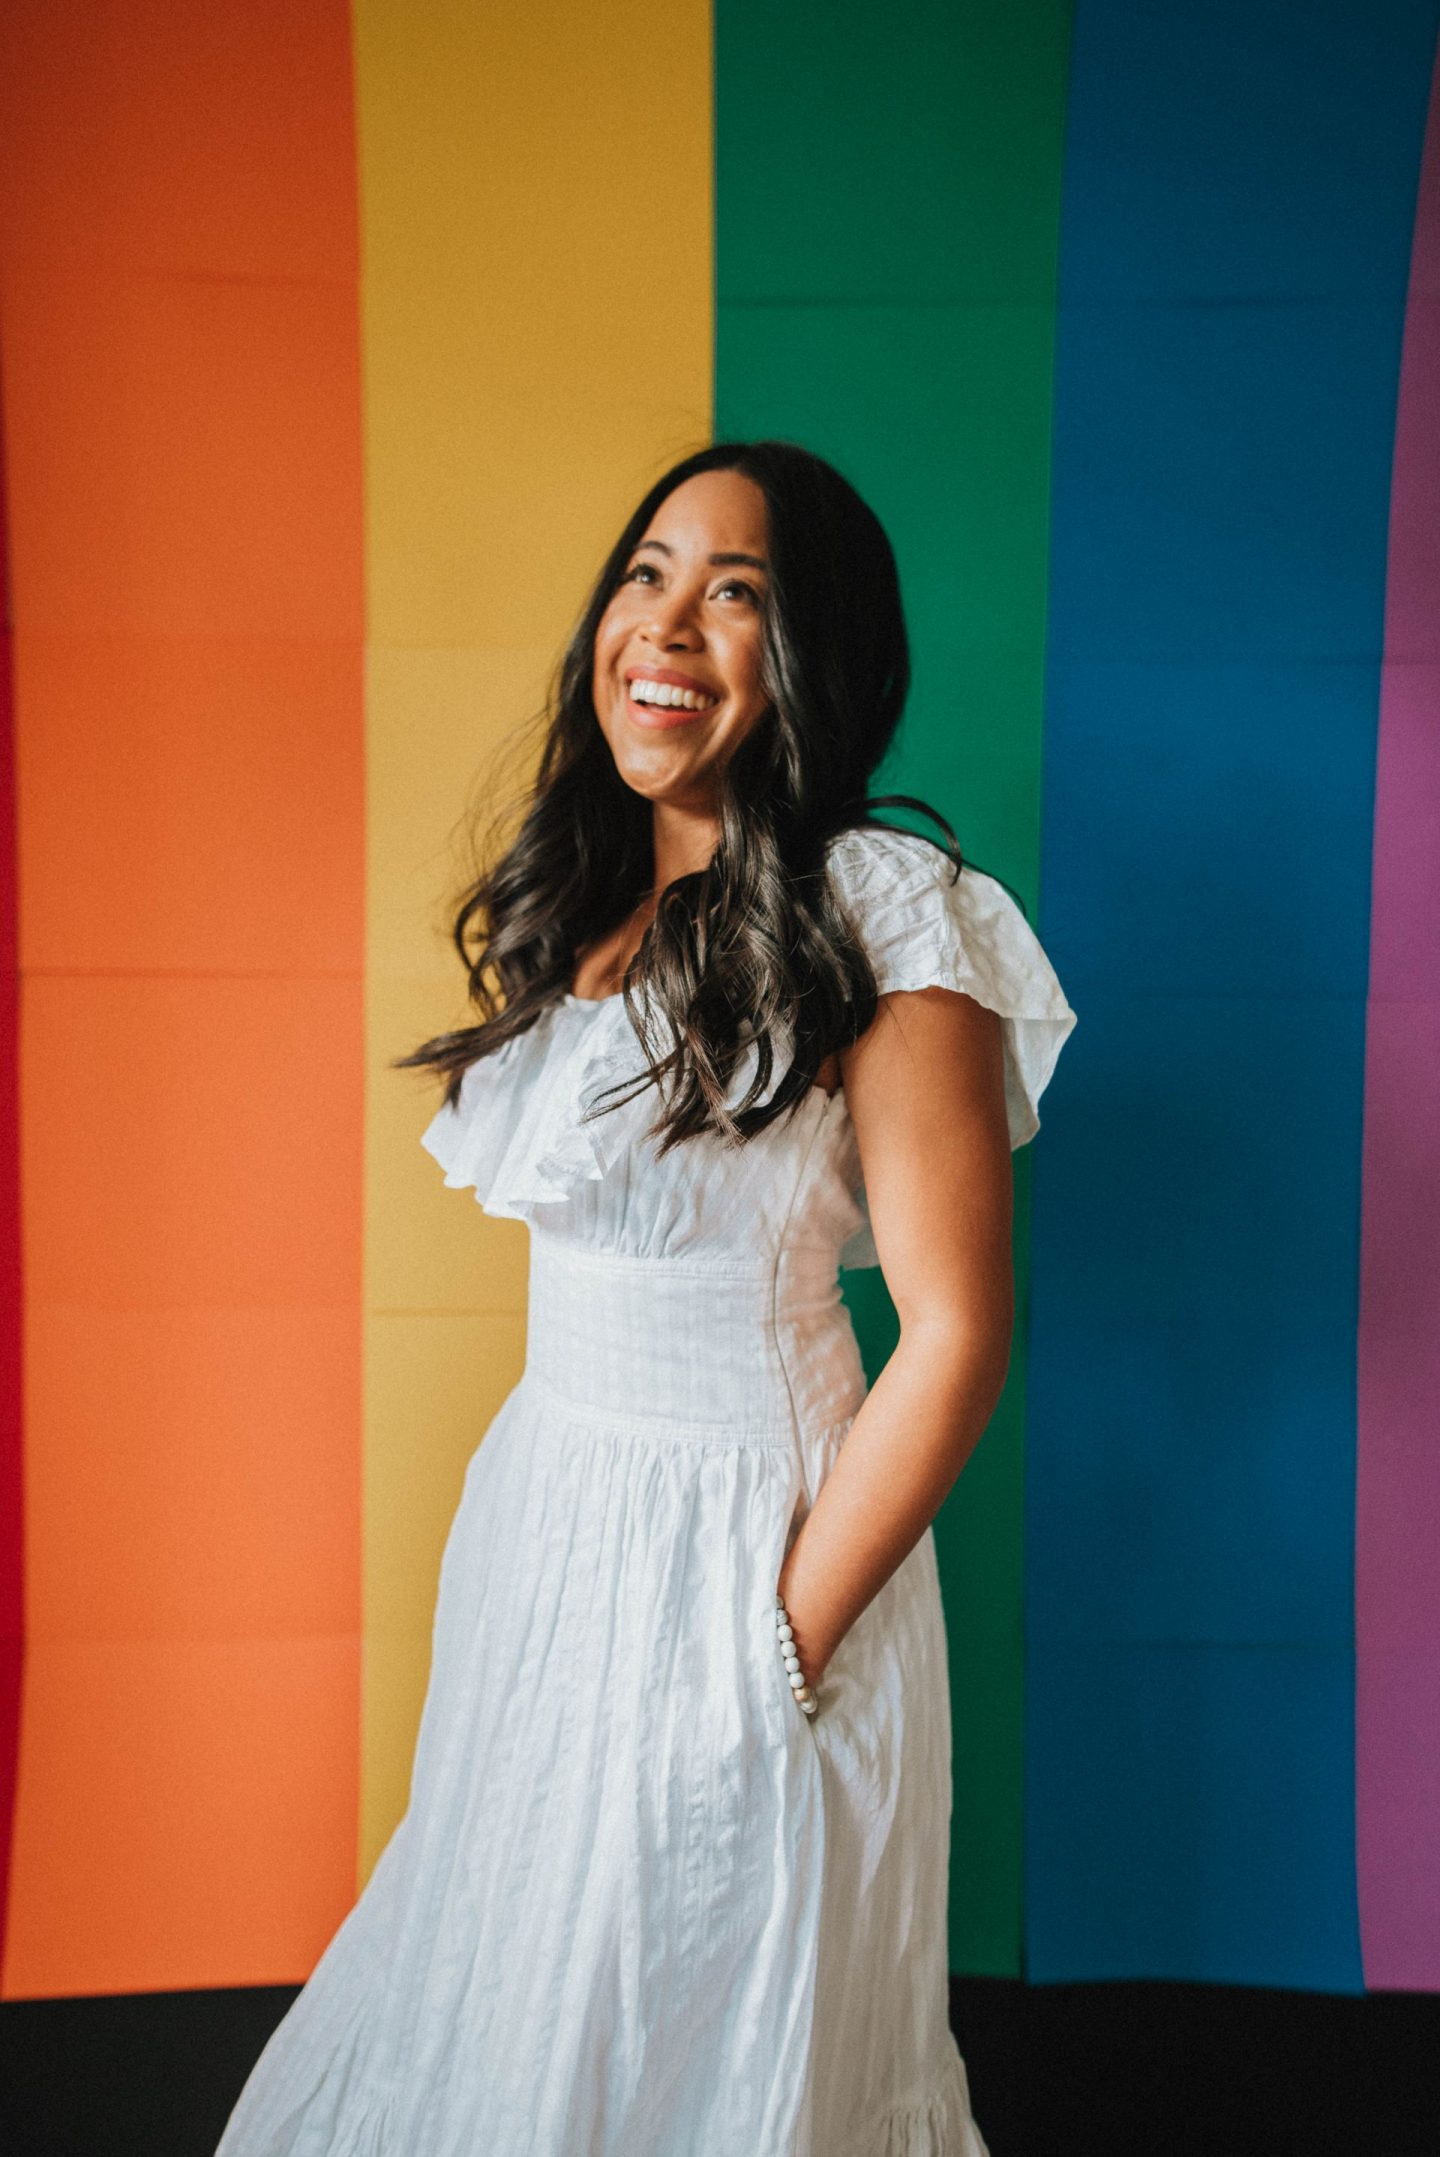 At home DIY rainbow wall - rainbow wall made of construction paper - indoor photo shoot idea with rainbow wall - Instagram story takeover preparation - Instagram story takeover tips - image copyright Emma's Edition -  www.emmasedition.com